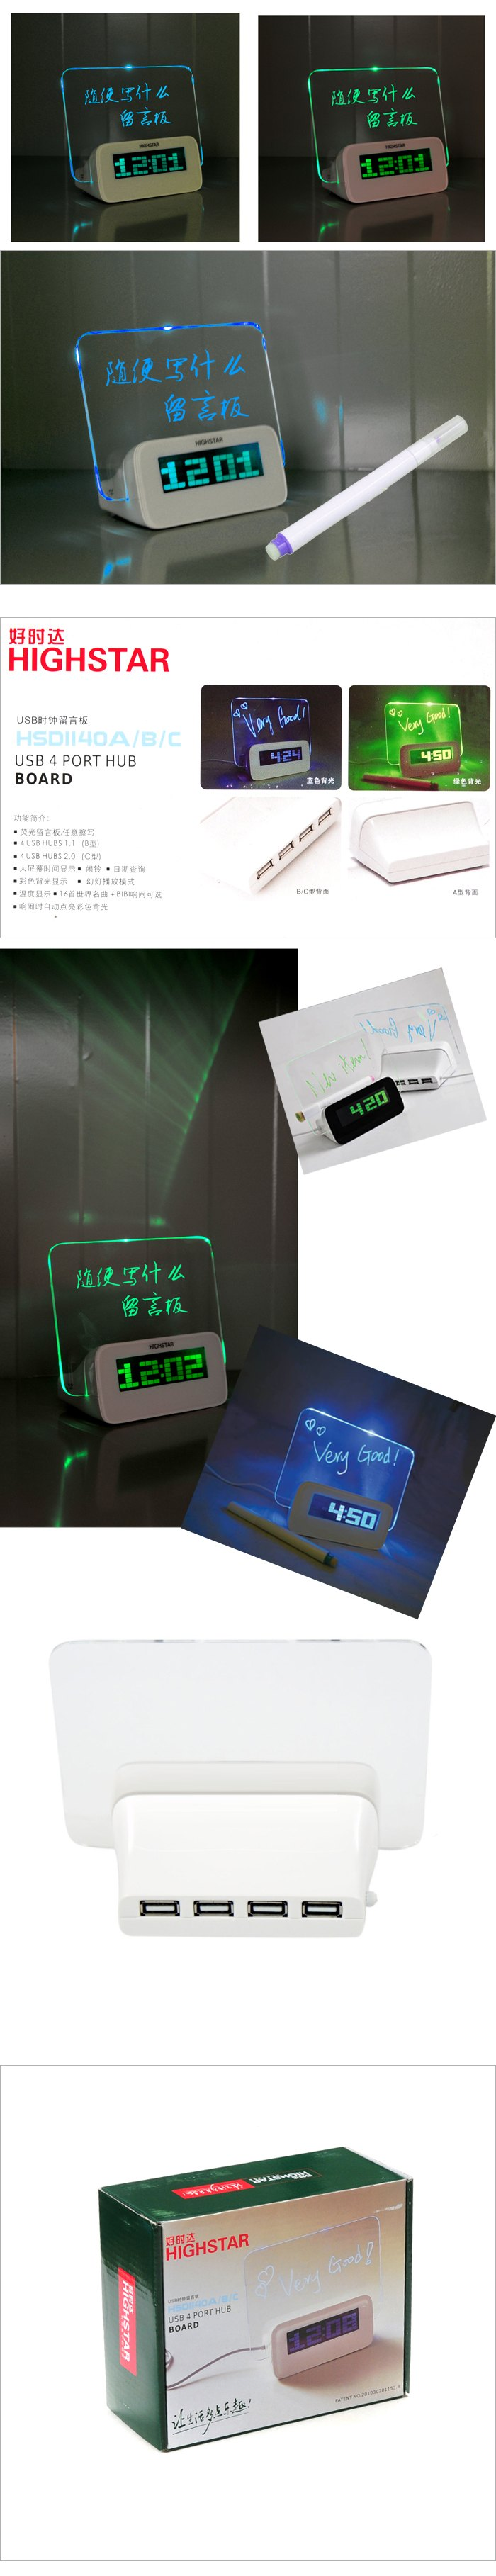 Highstar Good O'clock amounted to fluorescent Message board Alarm Clock creative mute bell Luminous electronic bell dawdler multi-function Highlighter downtown